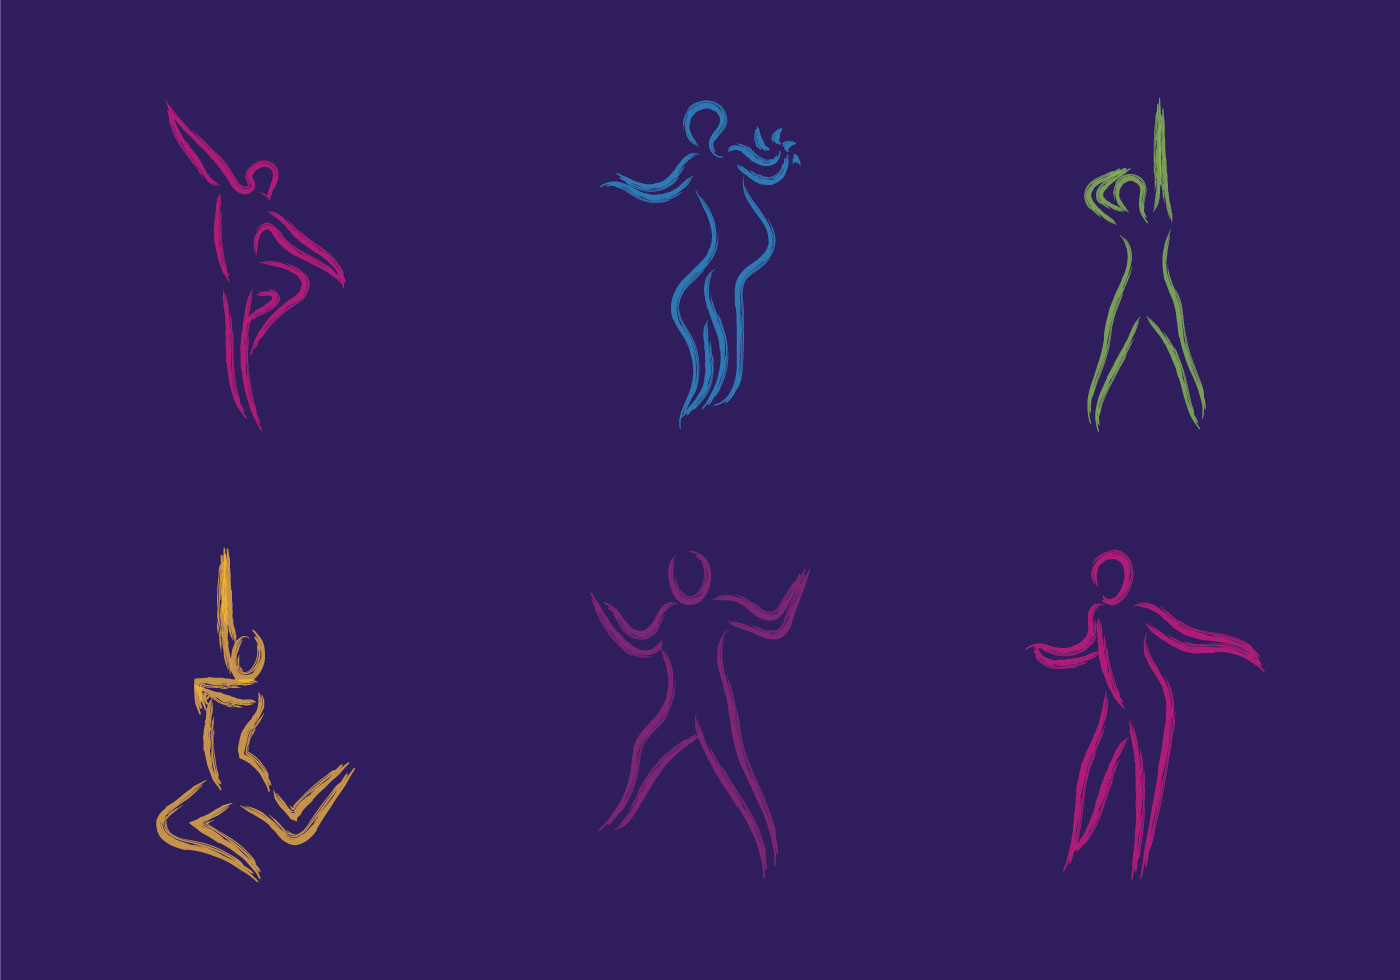 Download Free Vector Art Stock: Free Zumba Vector Illustration